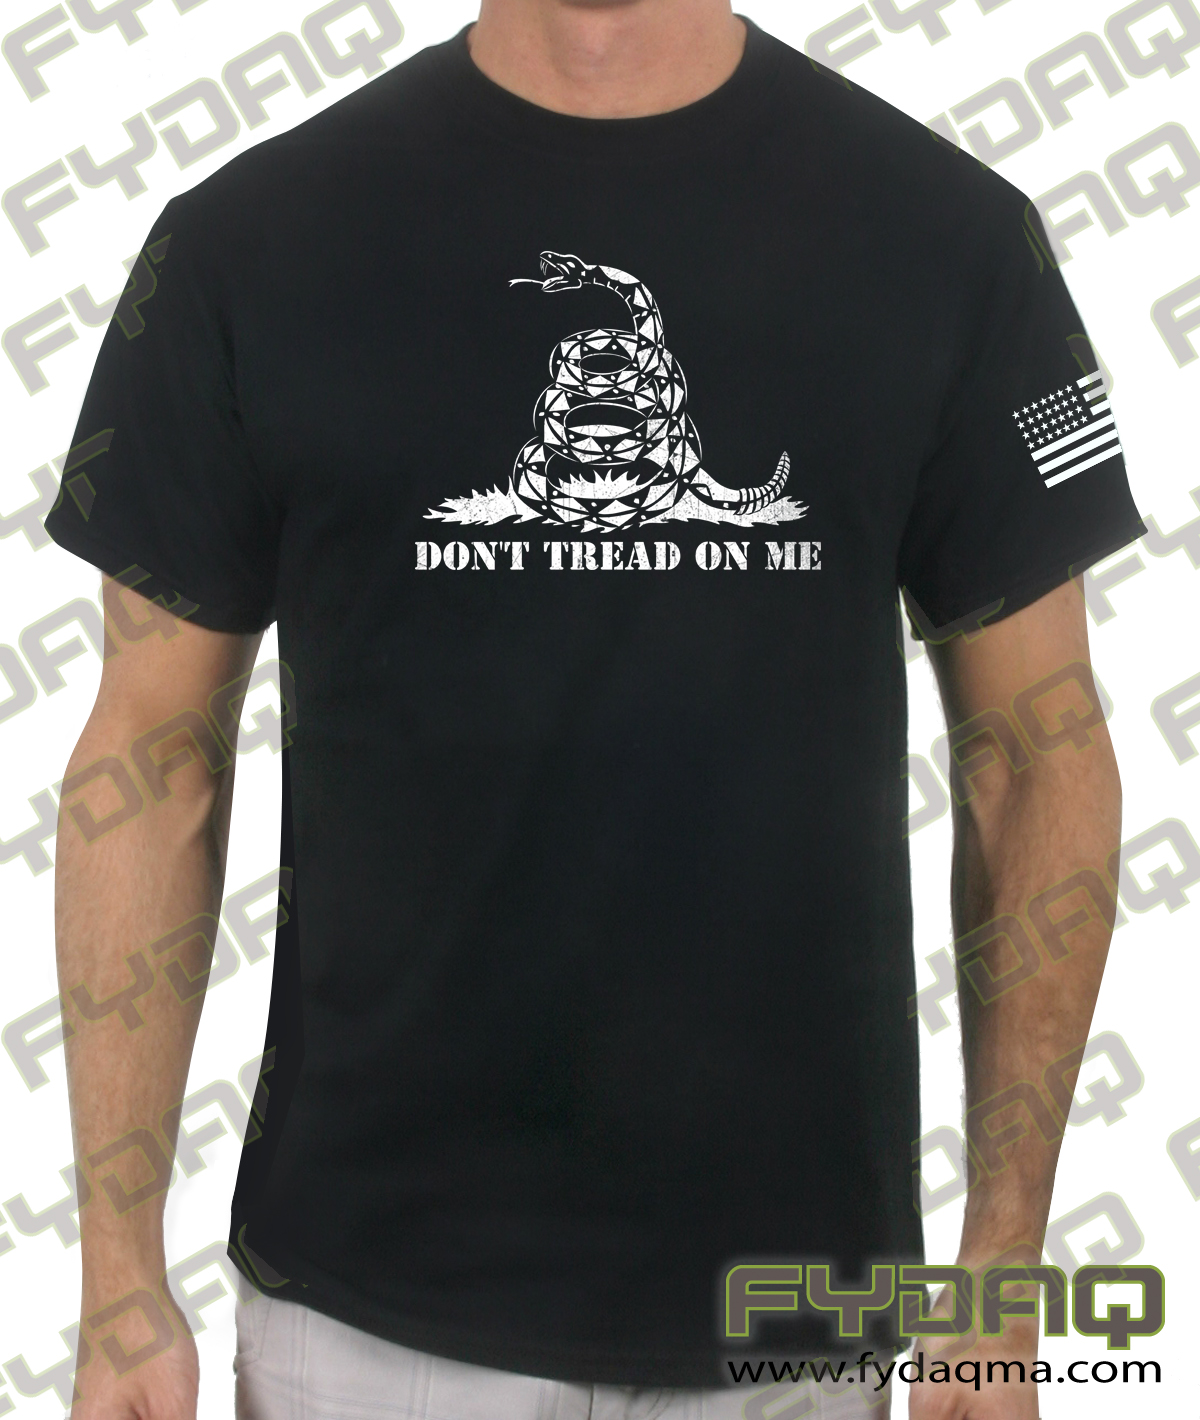 gadsden-flag-don't-tread-on-me-black-tshirt